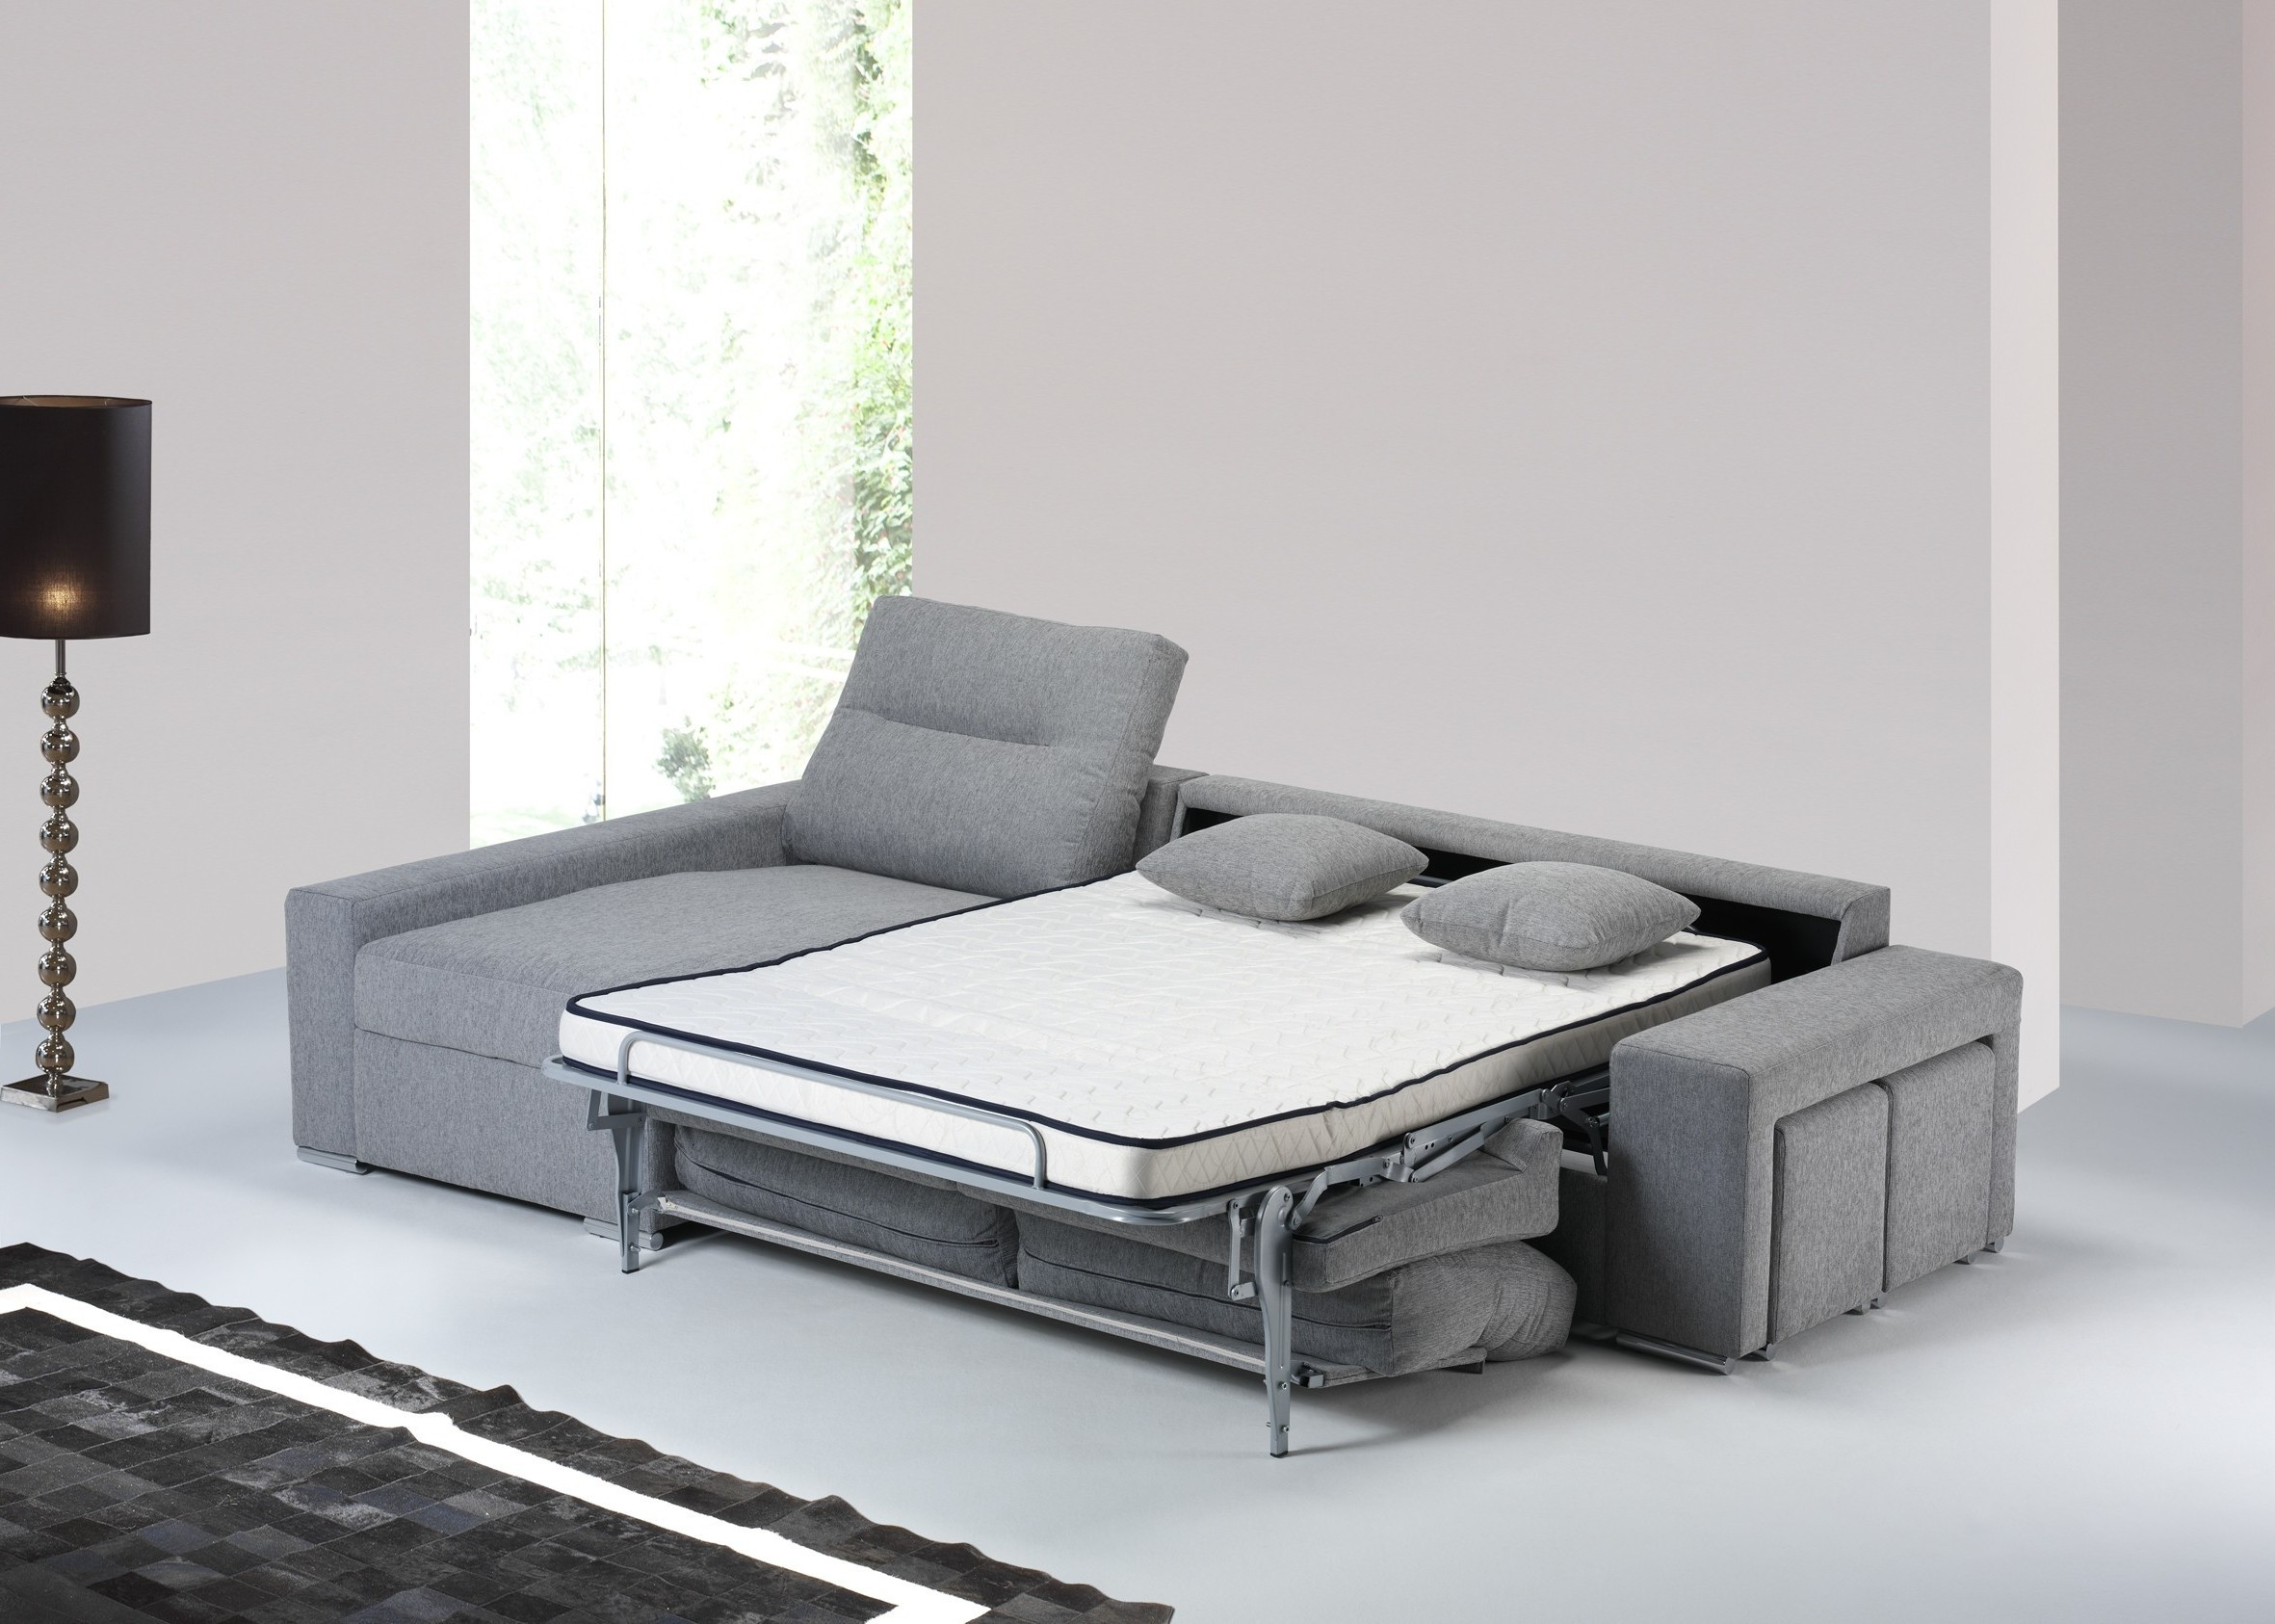 Canape Convertible Confort Quotidien